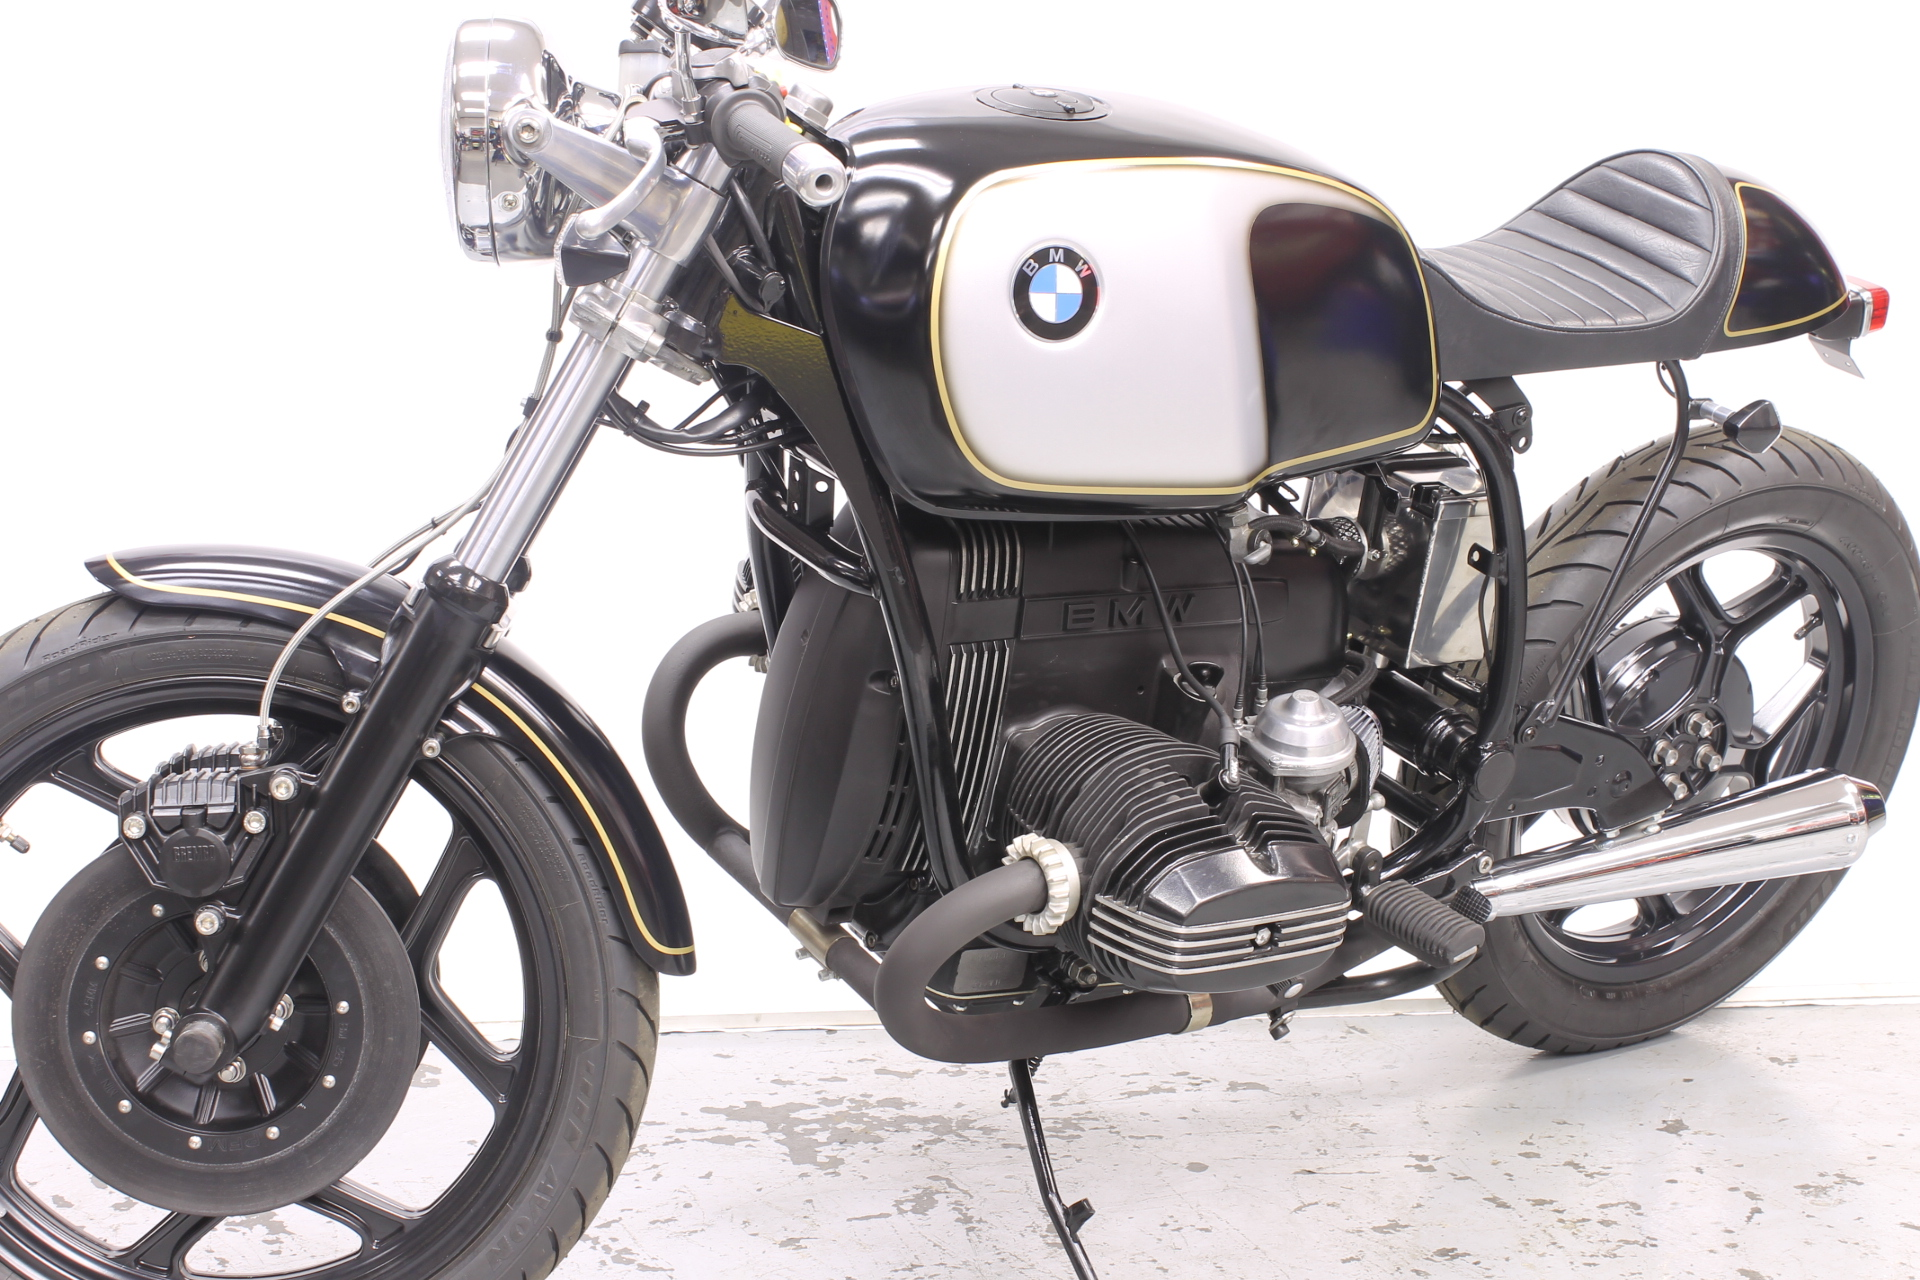 1985 bmw r80 cafe racer sold moto pitstop. Black Bedroom Furniture Sets. Home Design Ideas